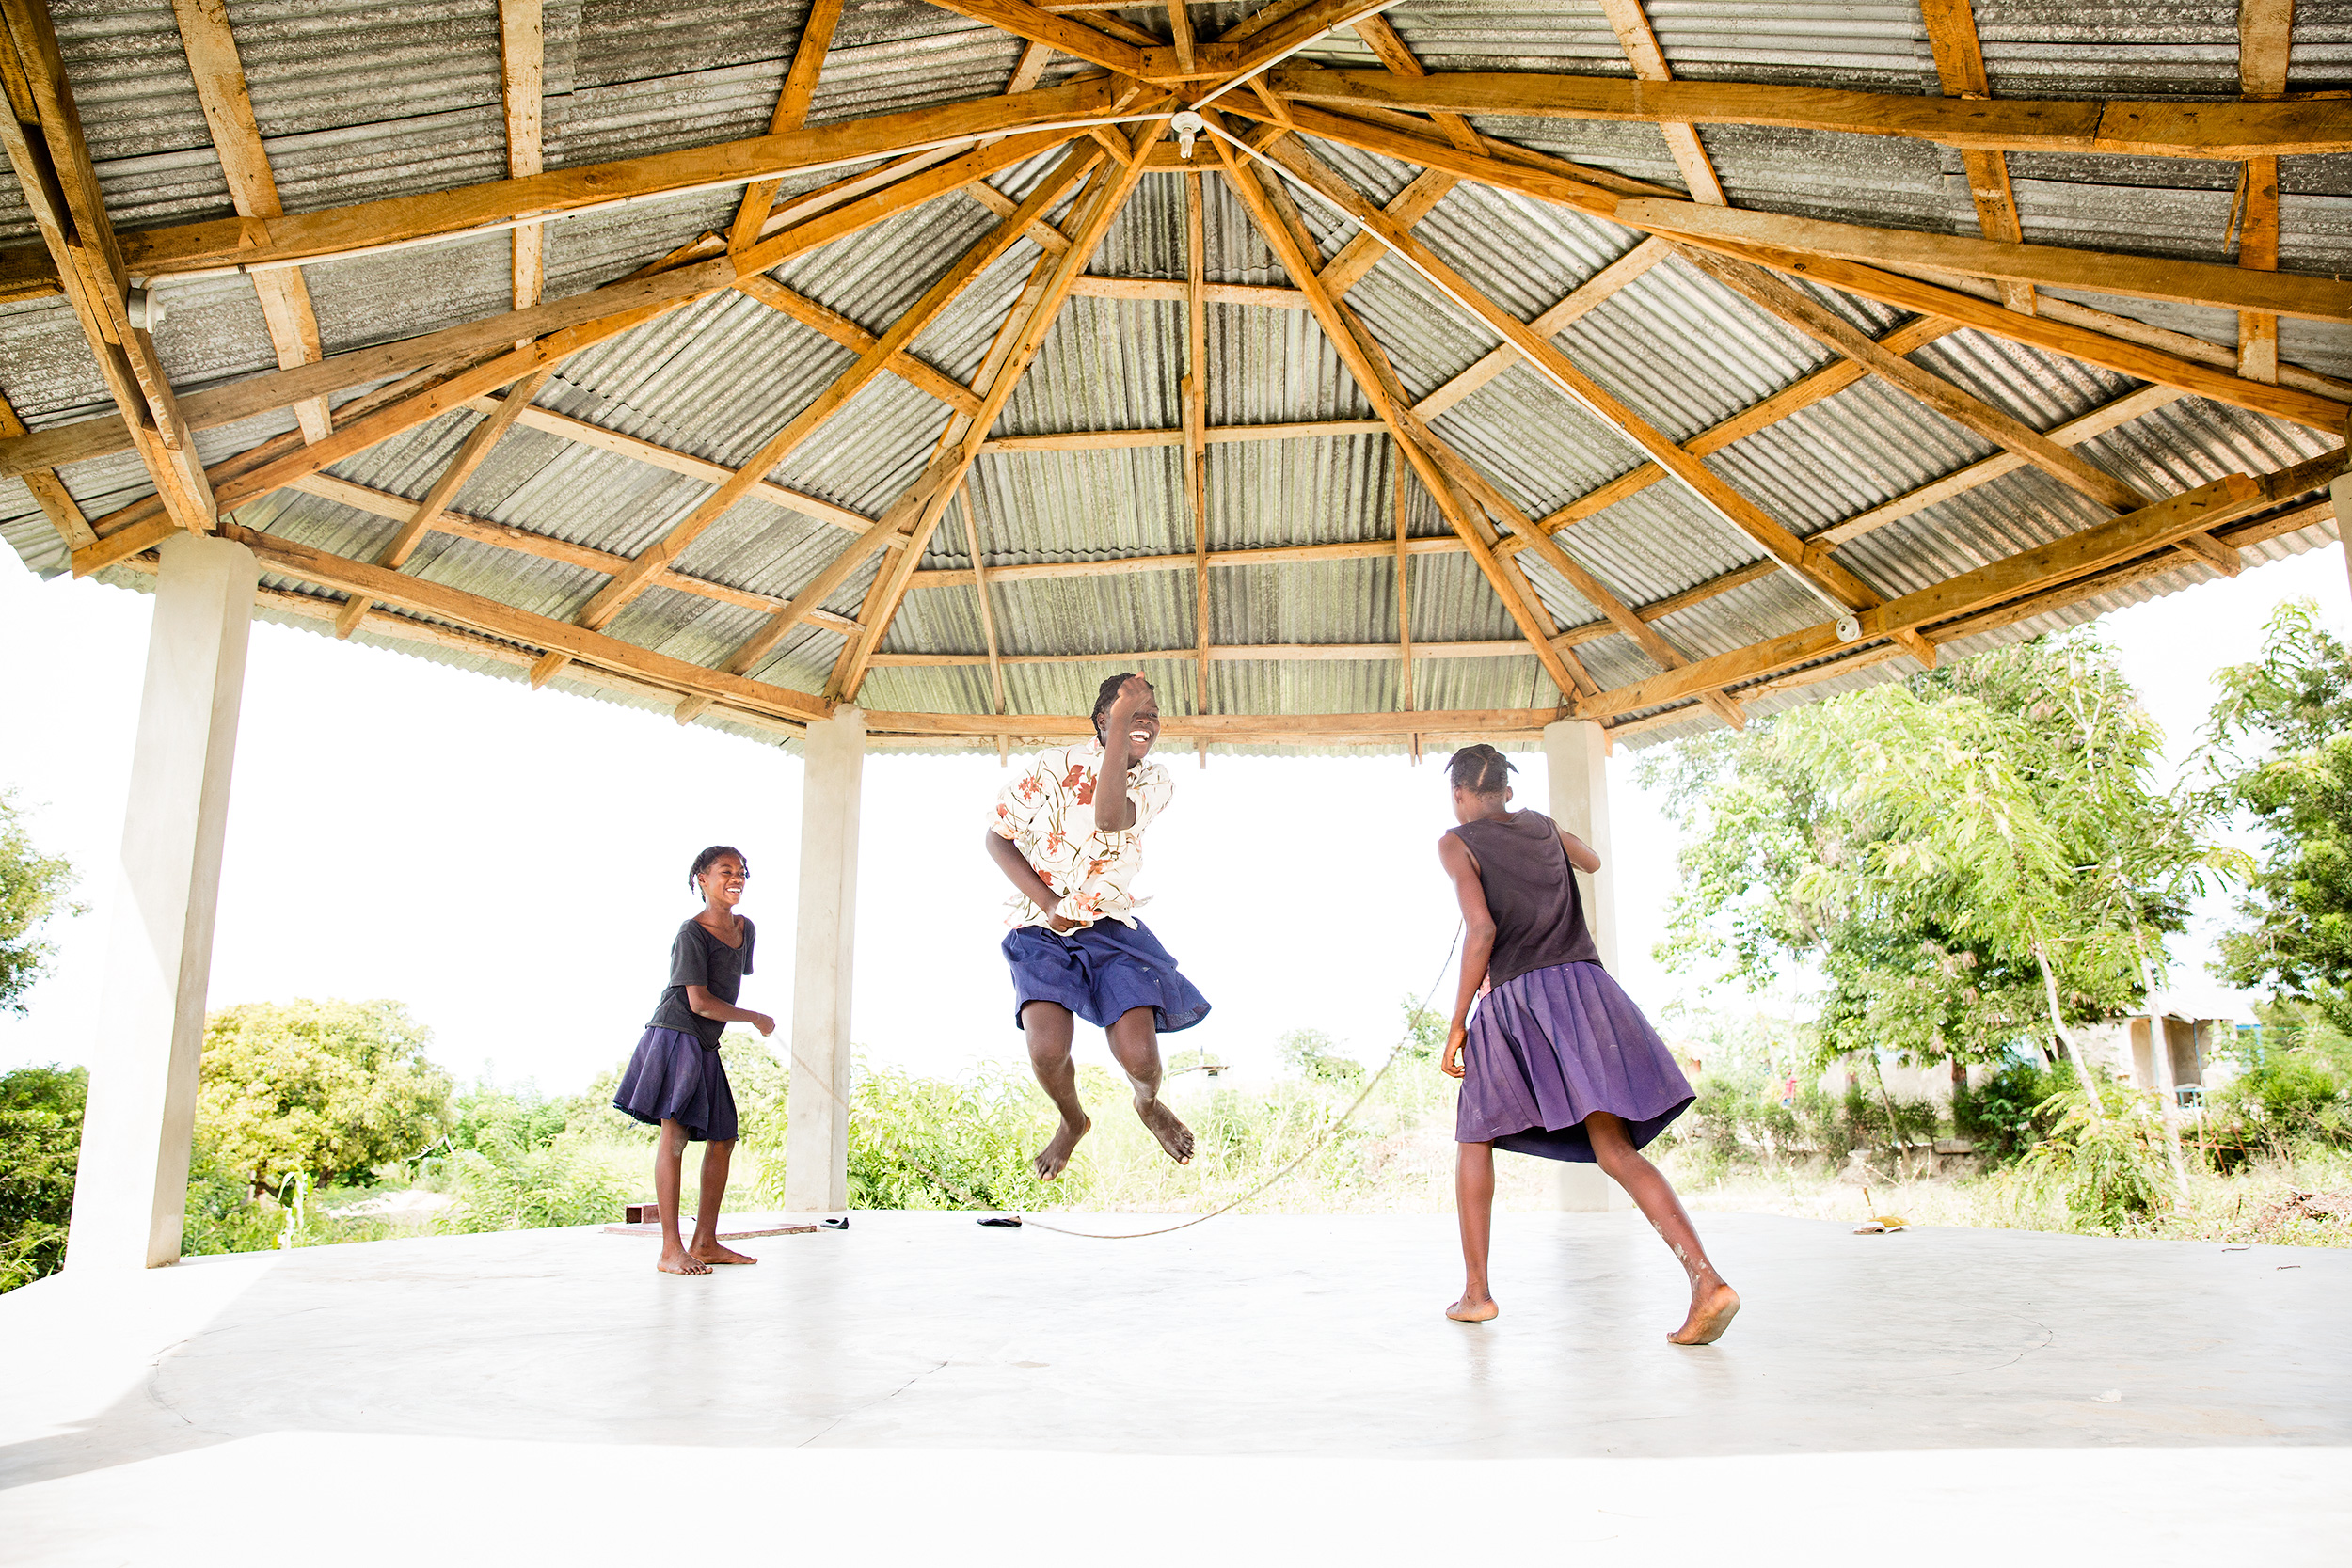 TRAVEL_HAITI_SCHOOL_GIRLS_JUMPROPE_ngo_play_joy_0815_WB